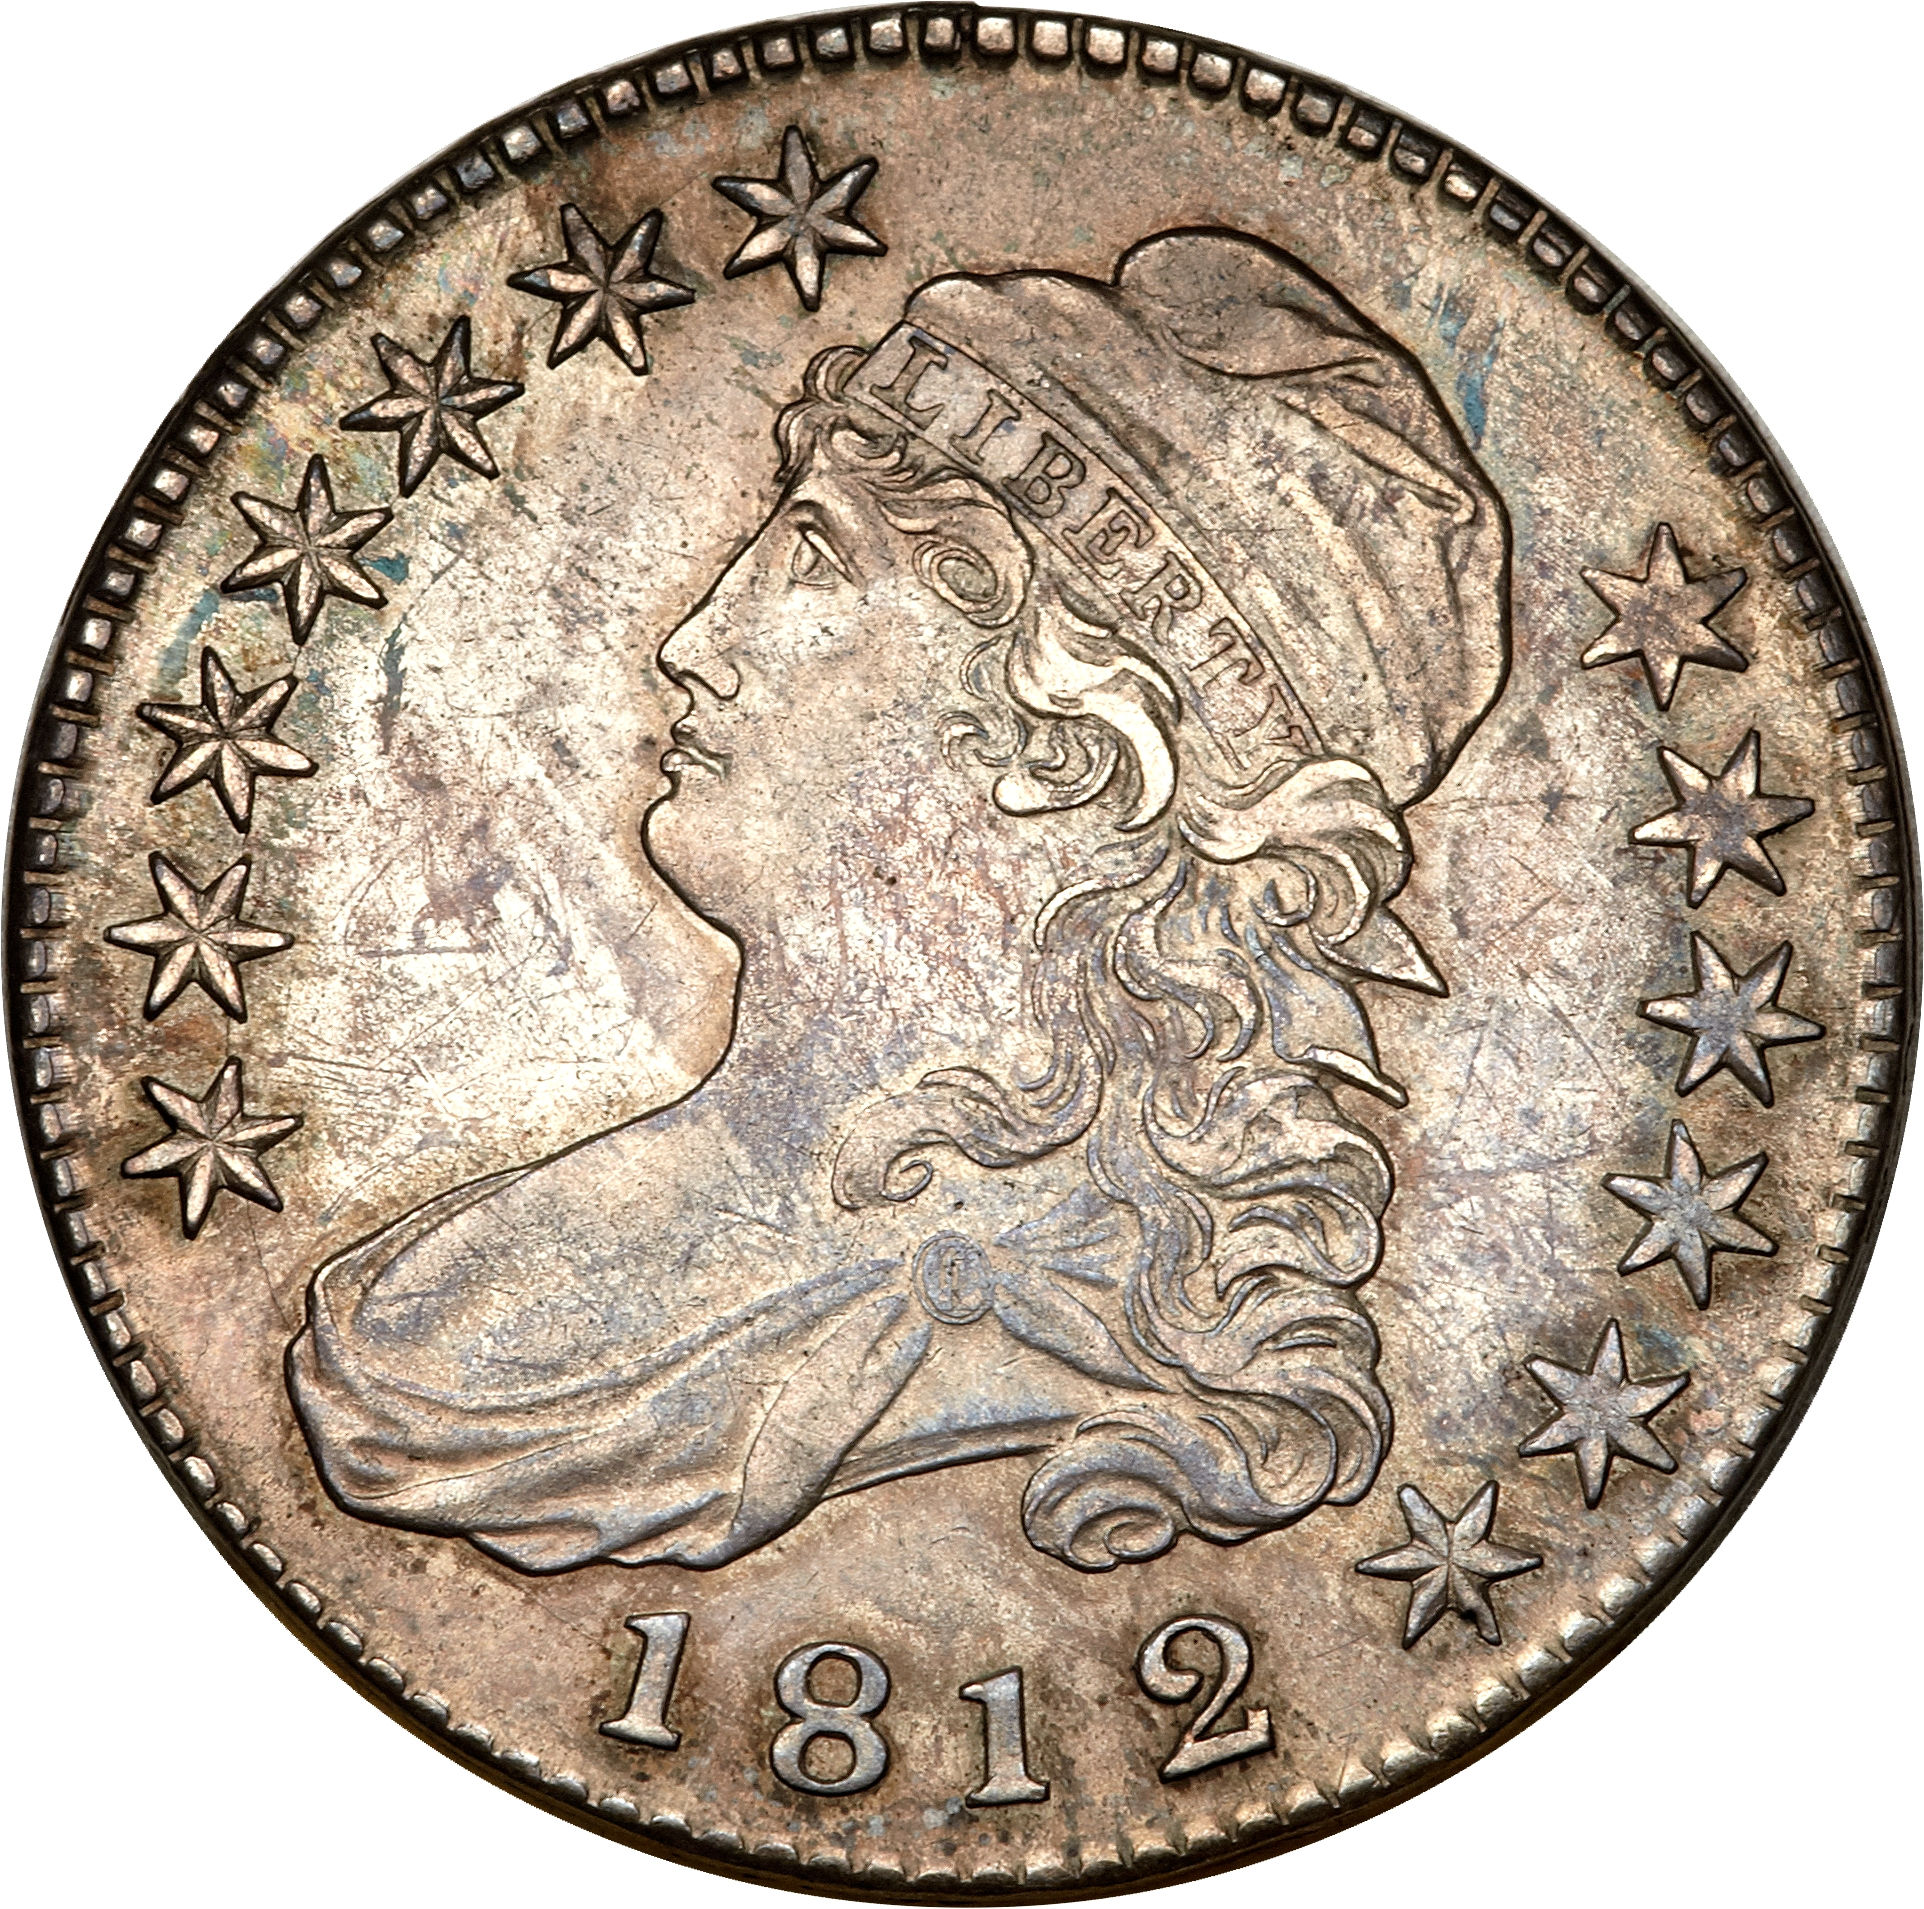 1812 Capped Bust Half Dollar Variety Images Overton